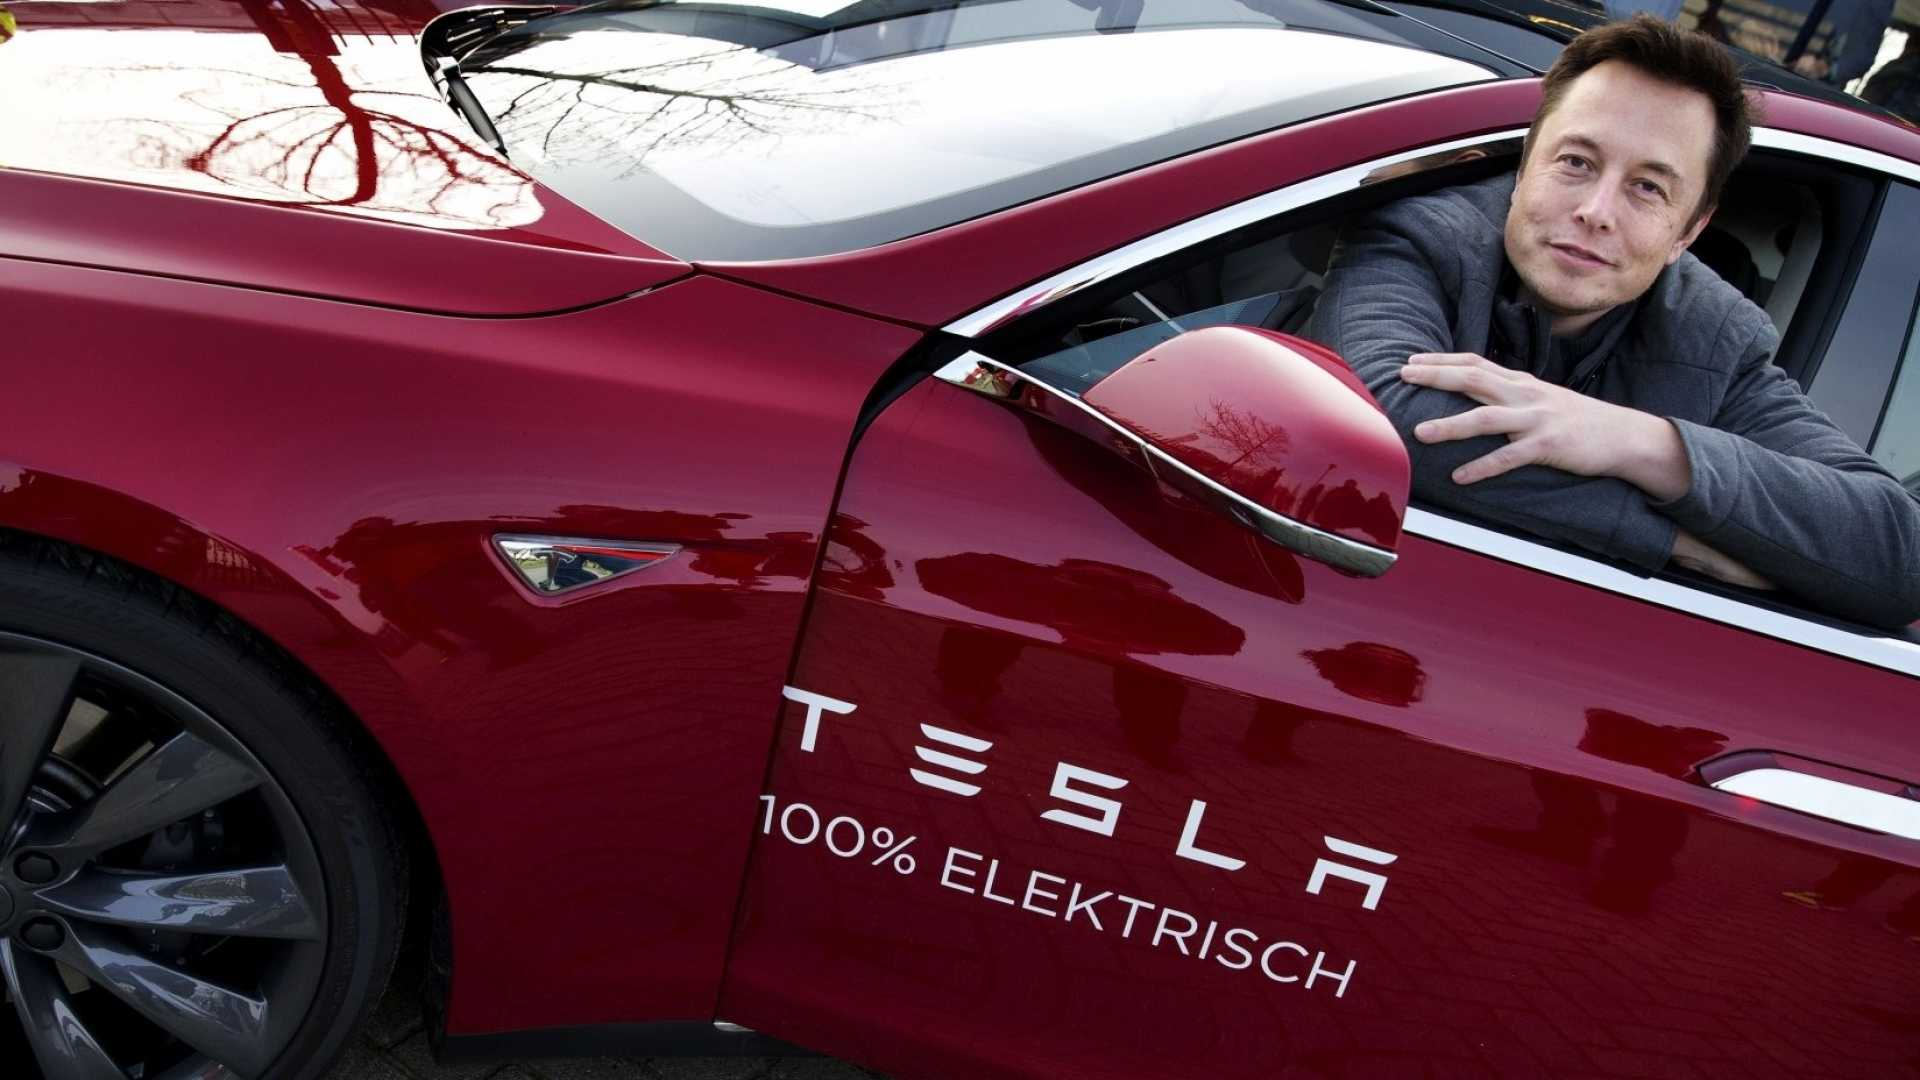 Tesla Just Dumped 2 Surprising Things to Save the Company's Faltering Reputation (Will Elon Musk's New Plan Work?)